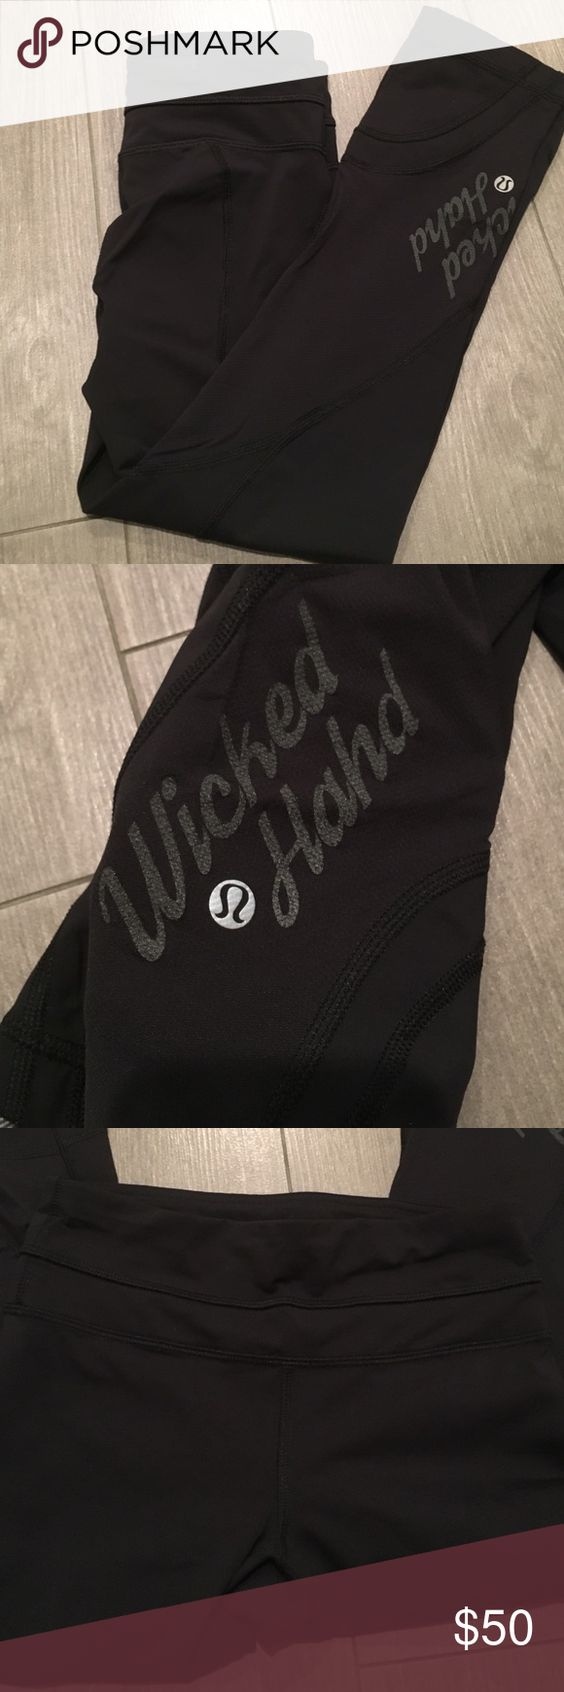 """Boston edition inspire tight """"Wicked hahd"""" inspire tights. Never been worn. Bought them too small. No flaws. Special edition for the Boston marathon lululemon athletica Pants Leggings"""